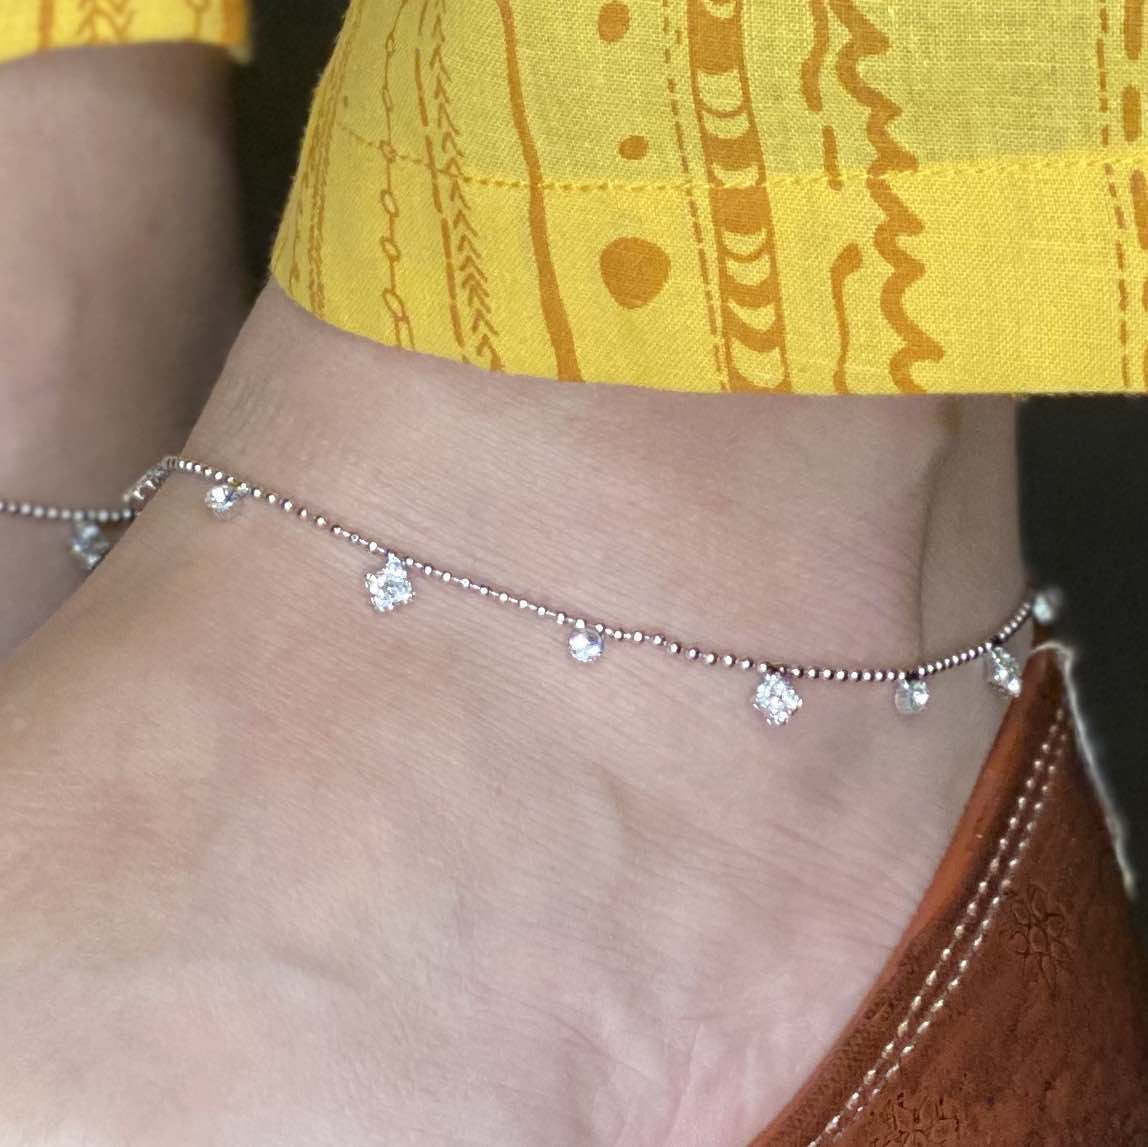 Cute Silver Anklet with Silver Stones